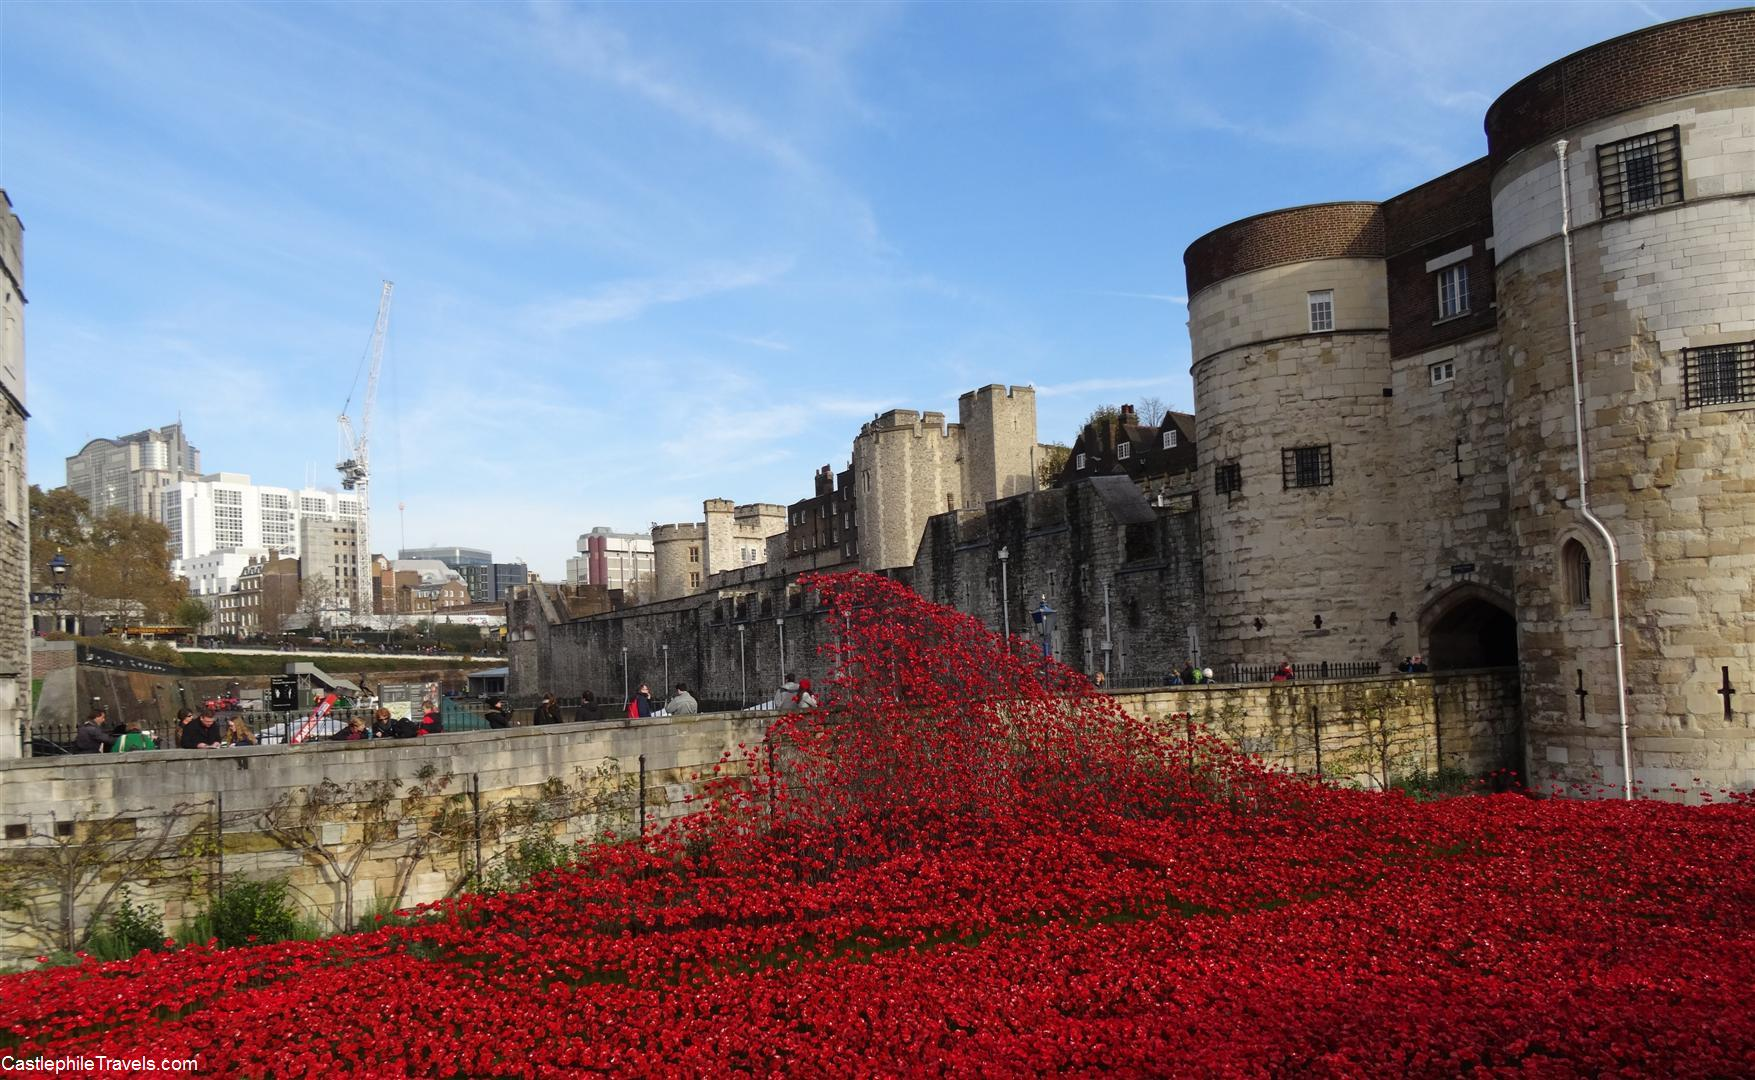 The 'Blood Swept Lands and Seas of Red' art installation at the Tower of London